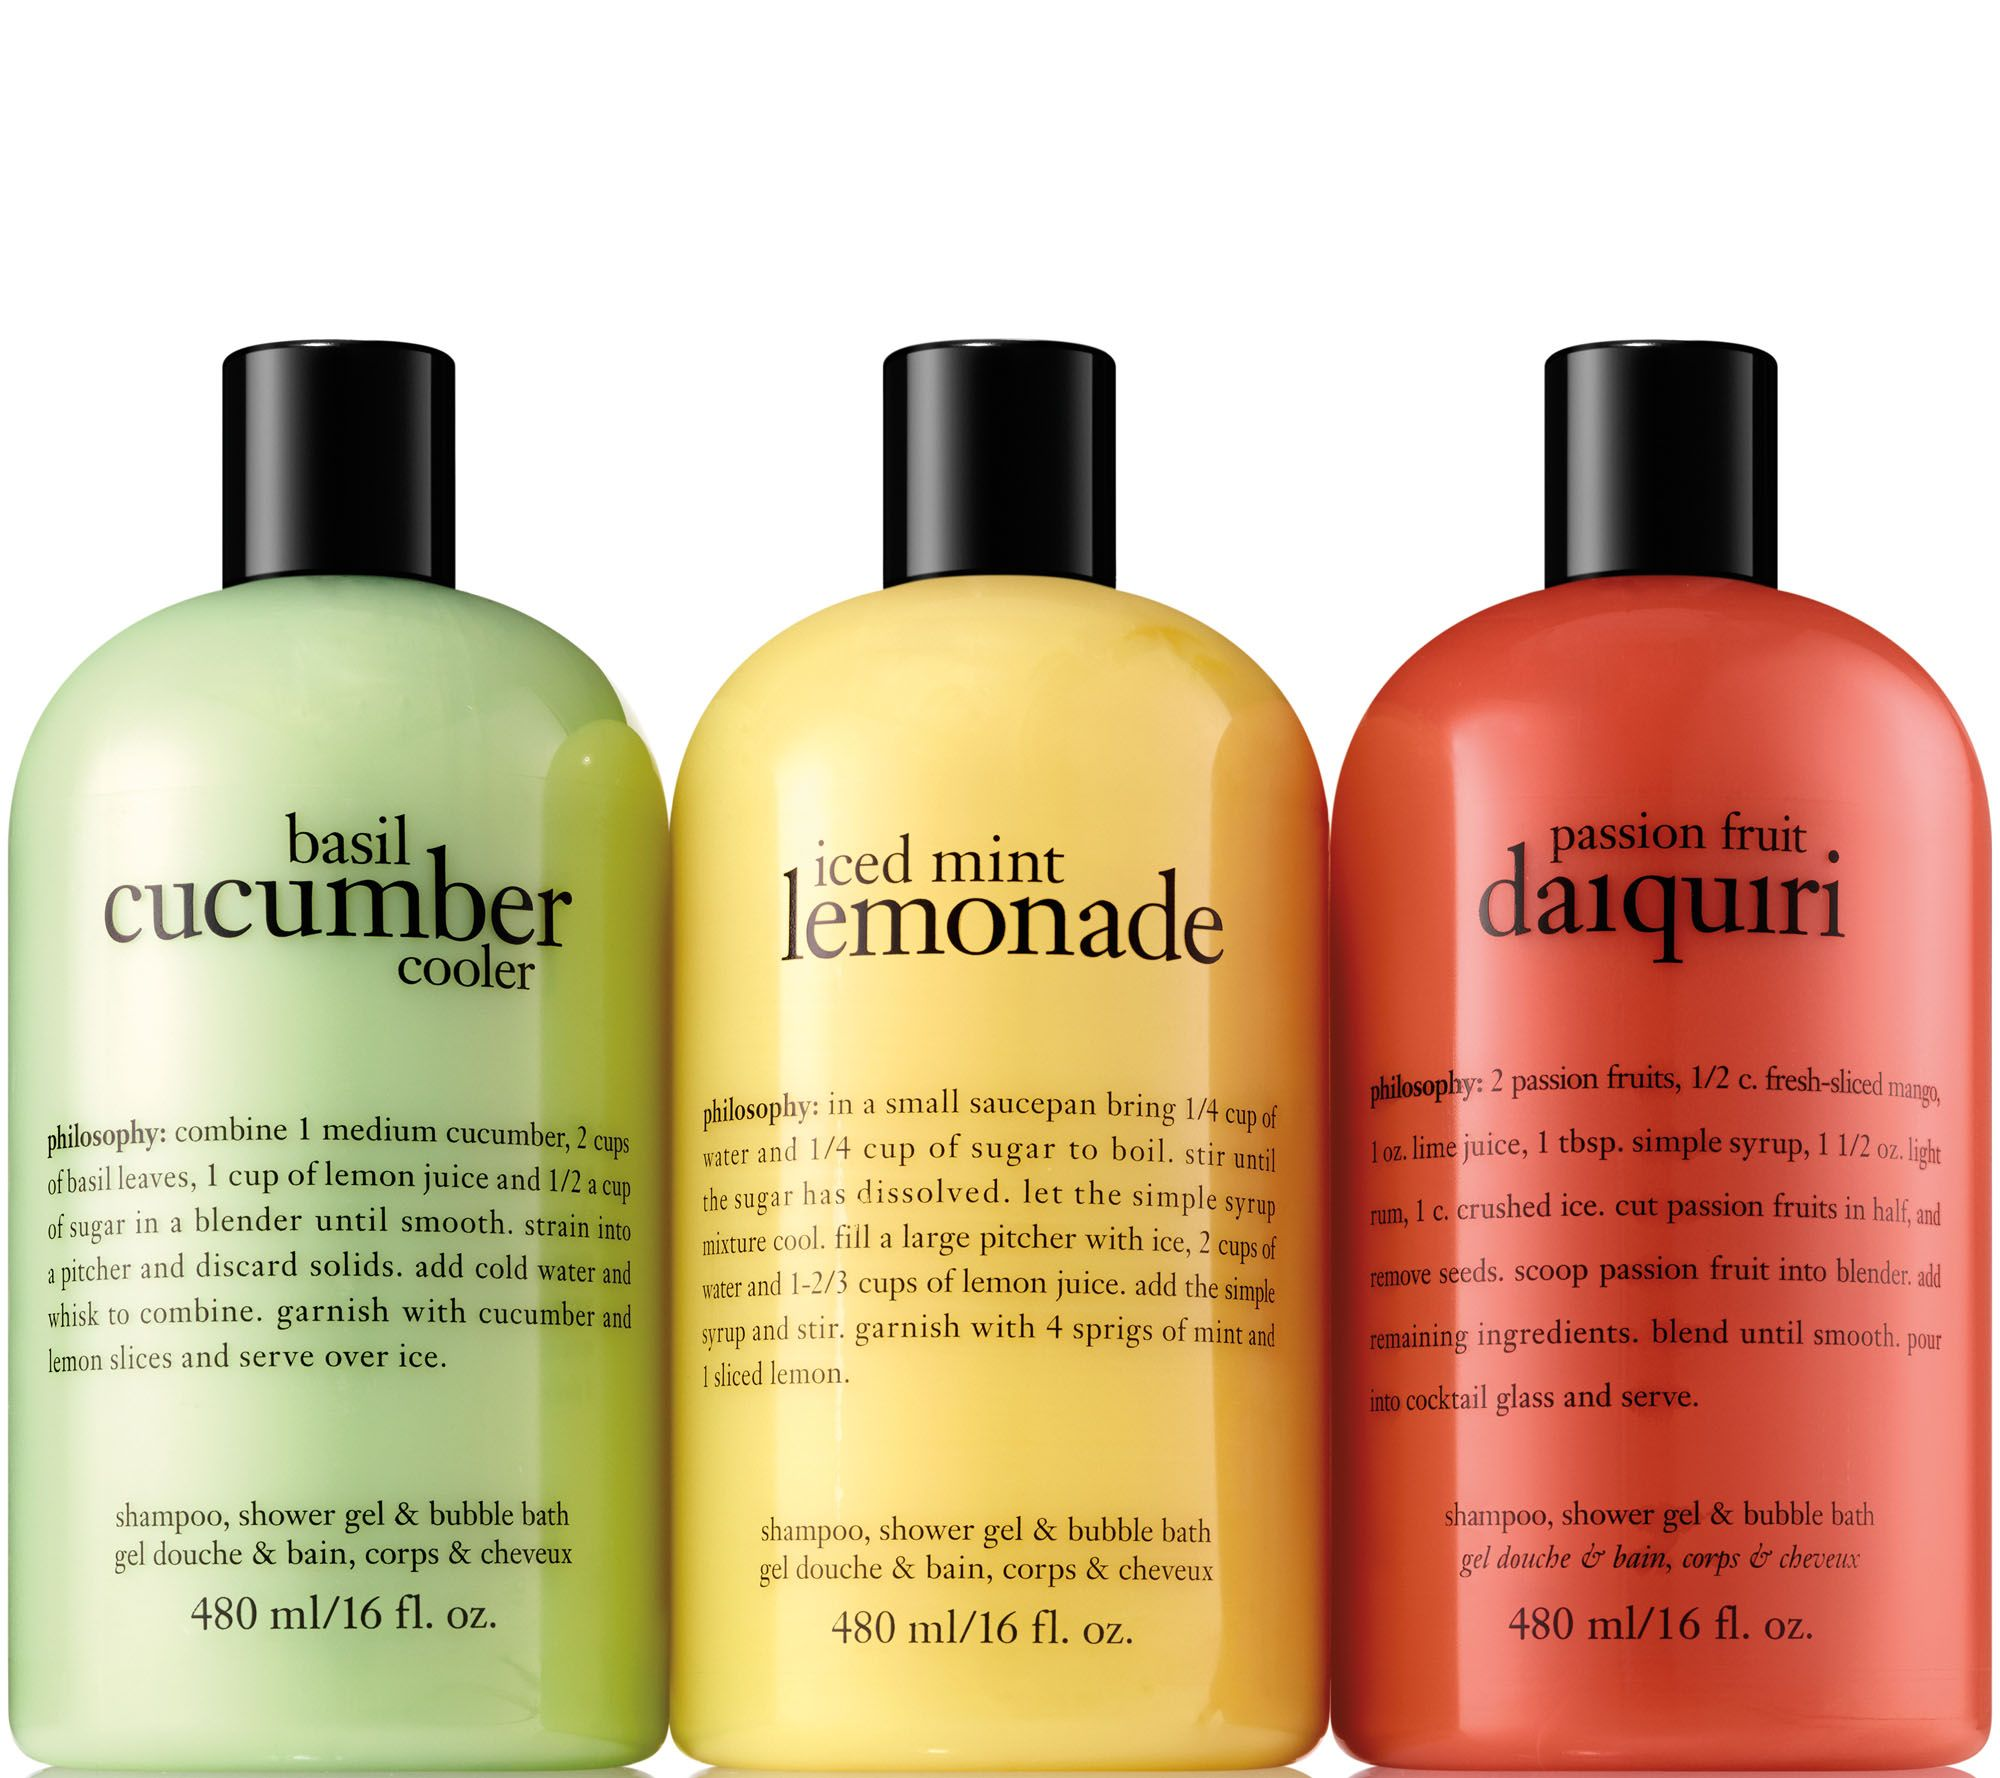 philosophy summer coolers shower gel trio Page 1 — QVC